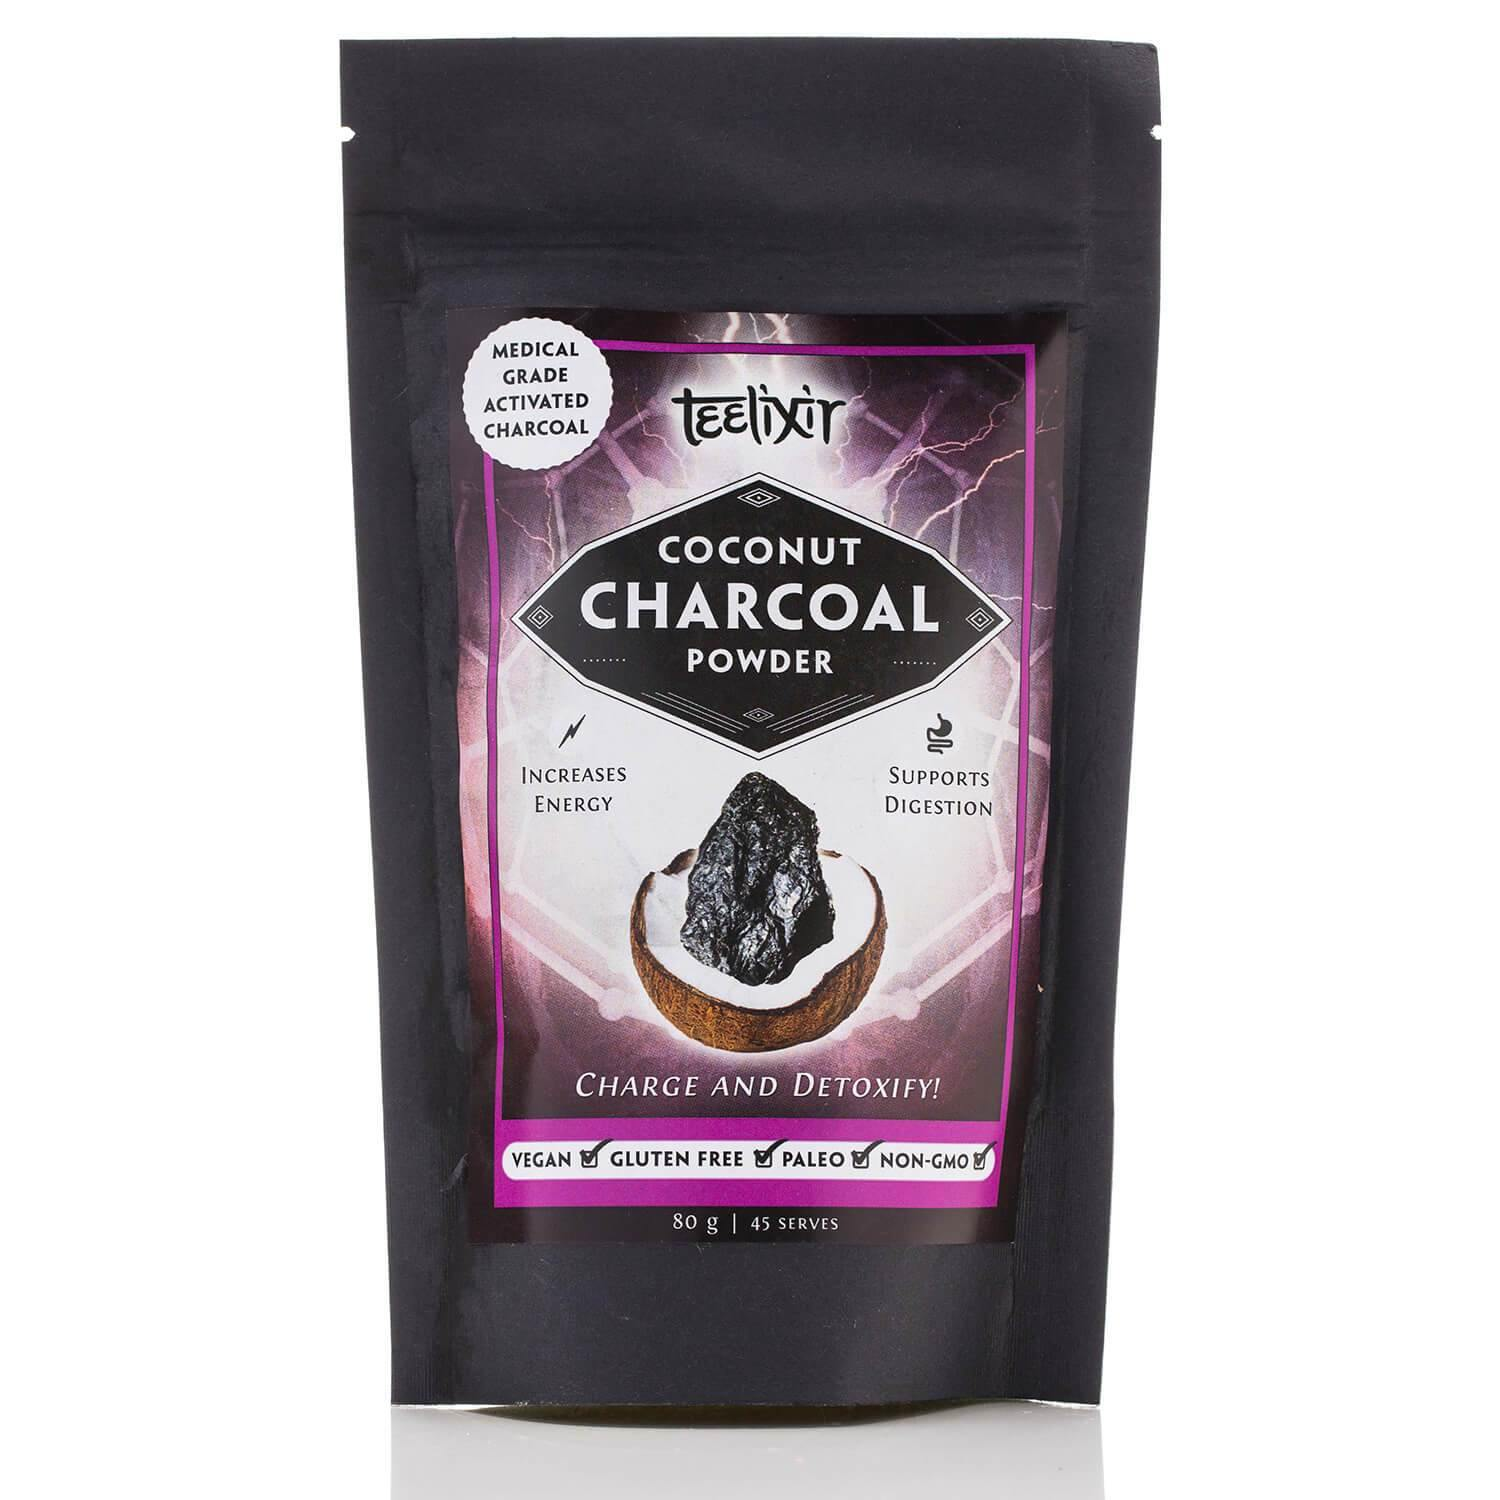 Teelixir Coconut Charcoal (Activated) Powder 80g